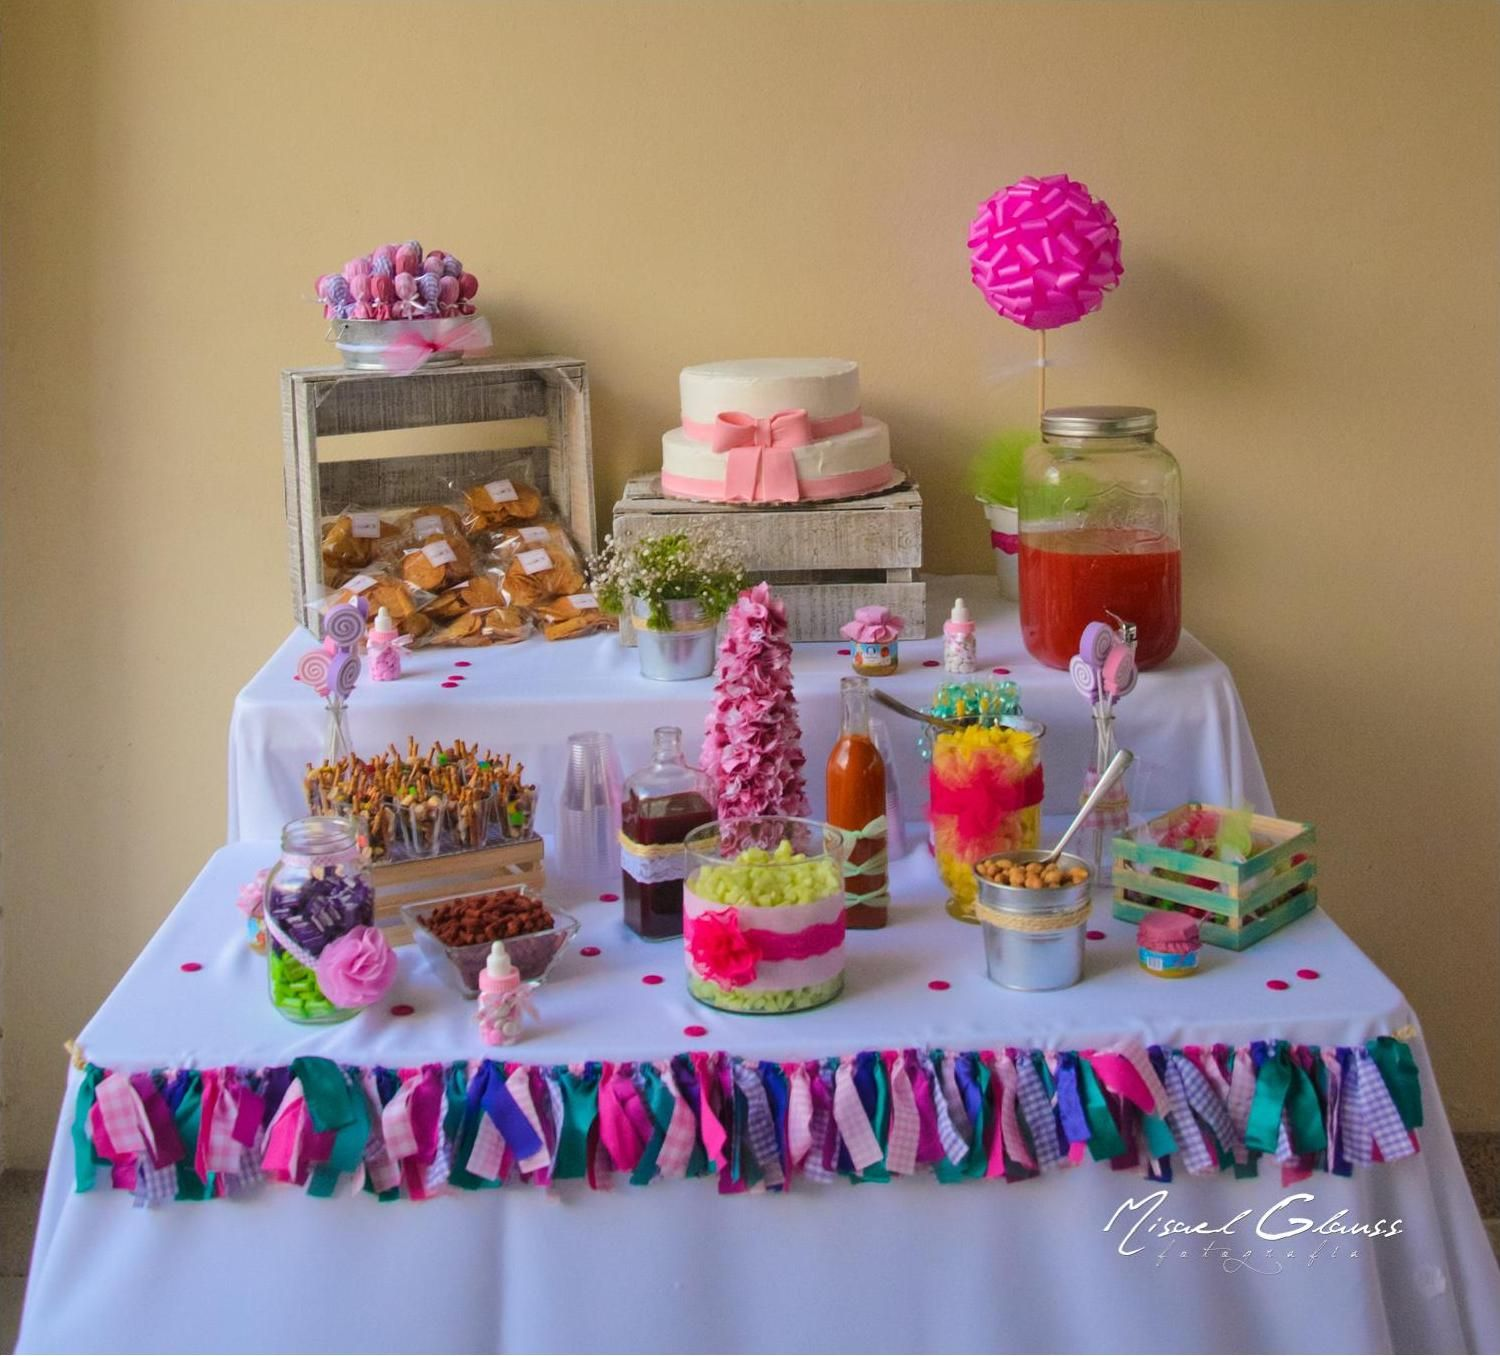 Mesa de Snacks  Baby Shower  Pinterest  Mesa de snack